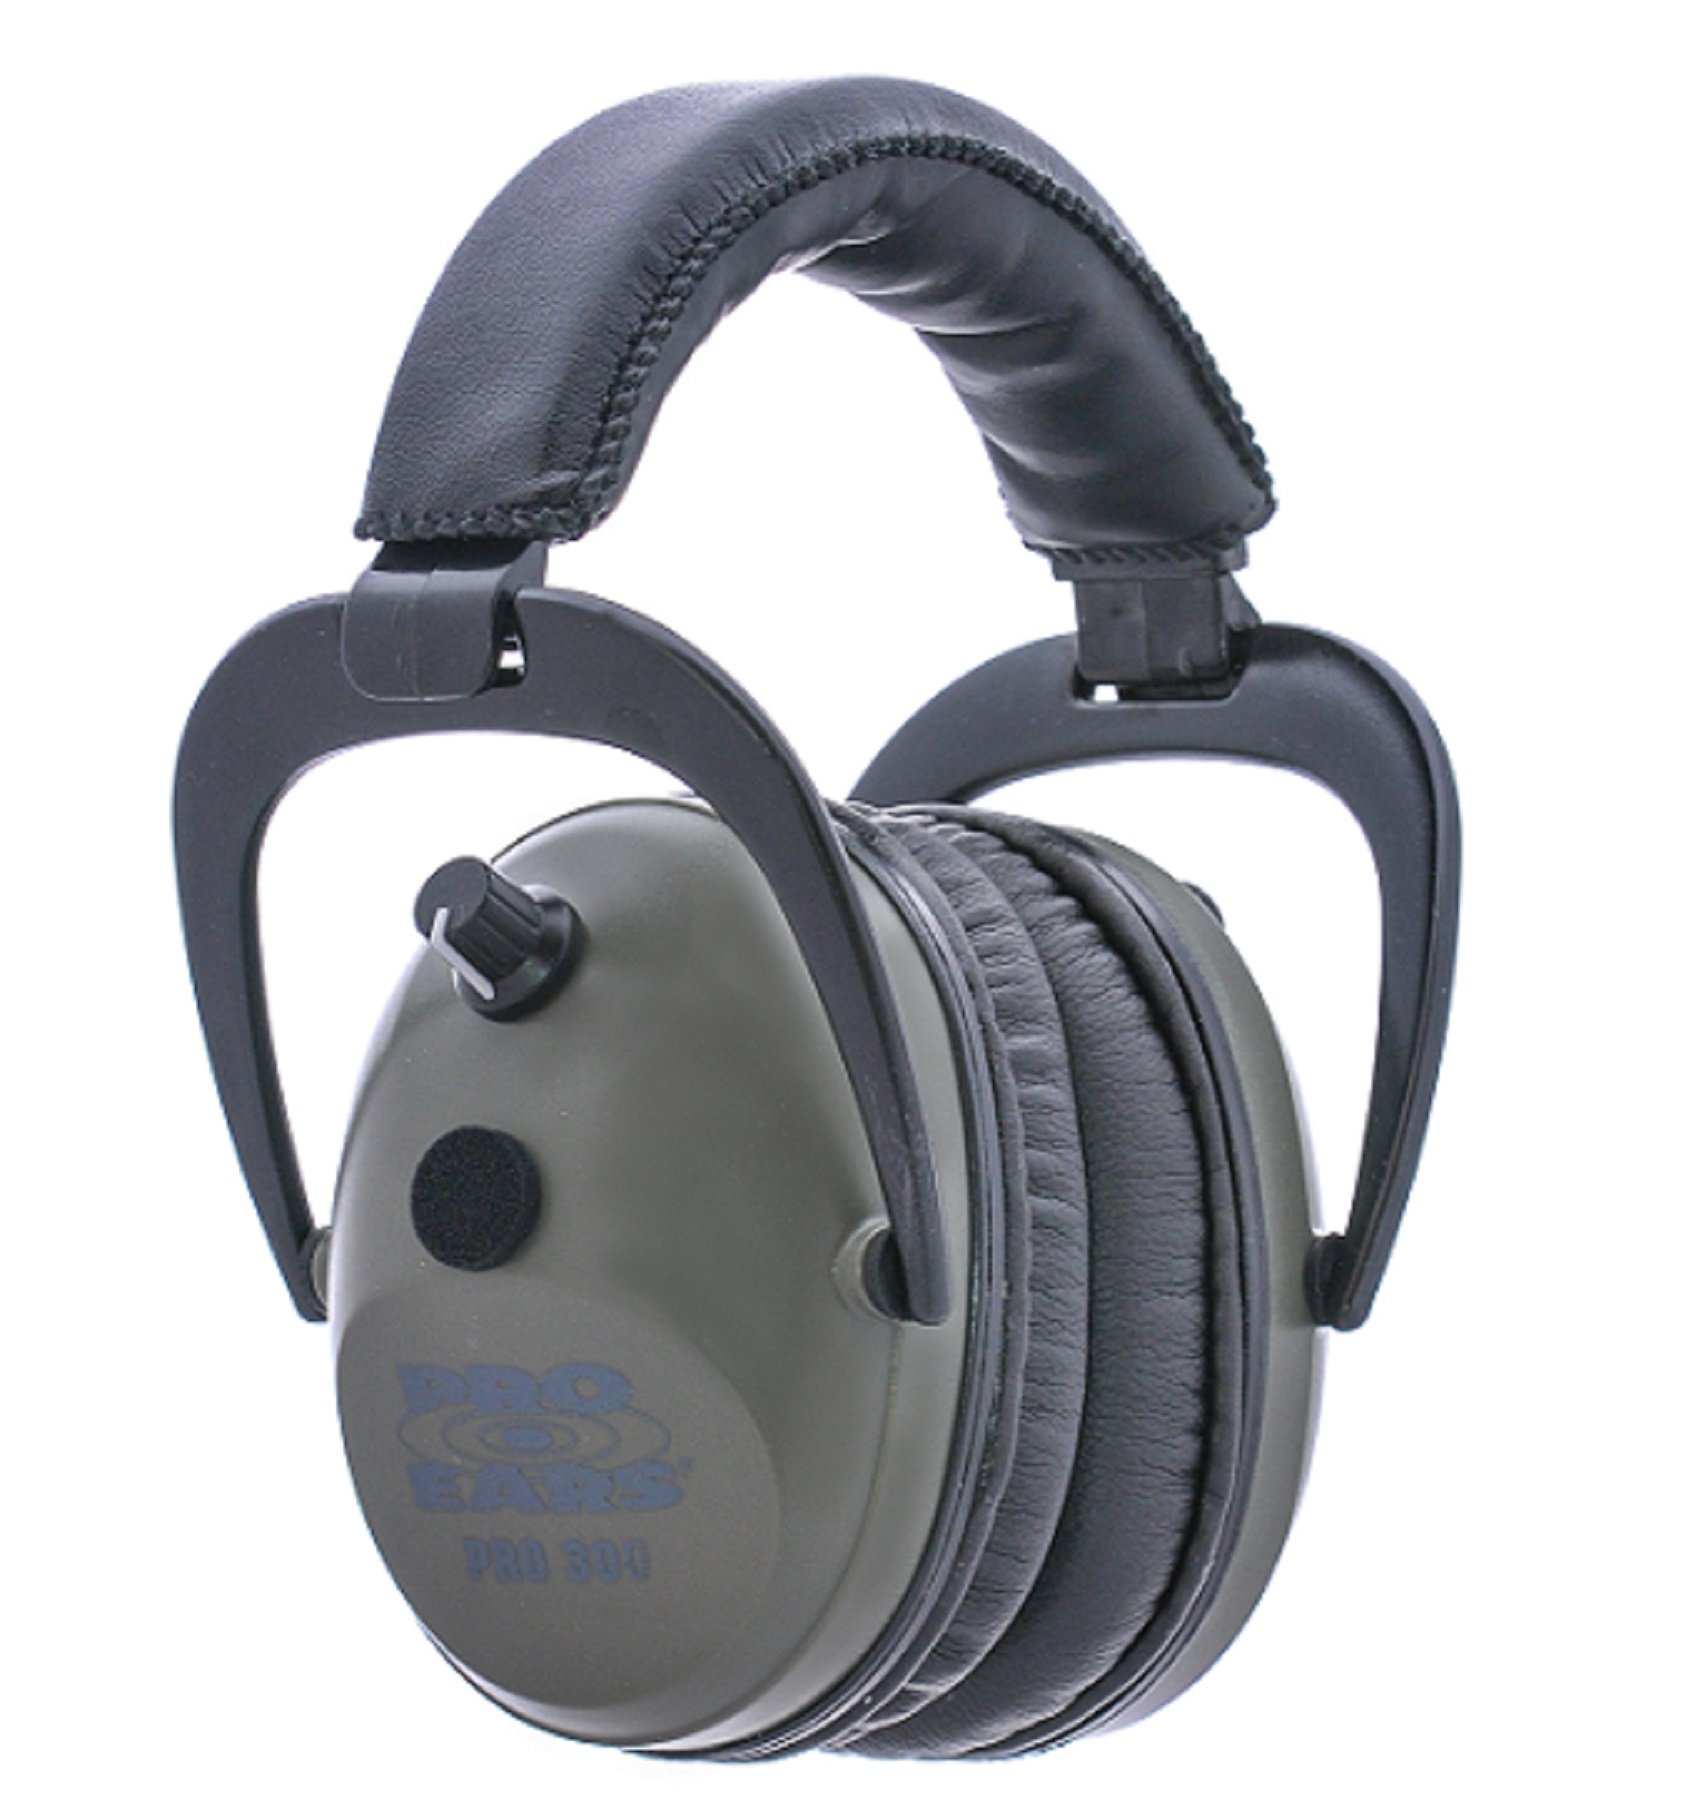 Pro Ears PT300G Pro Tac 300, Noise Reduction Rating 26DB, Green by Pro Ears (Image #1)